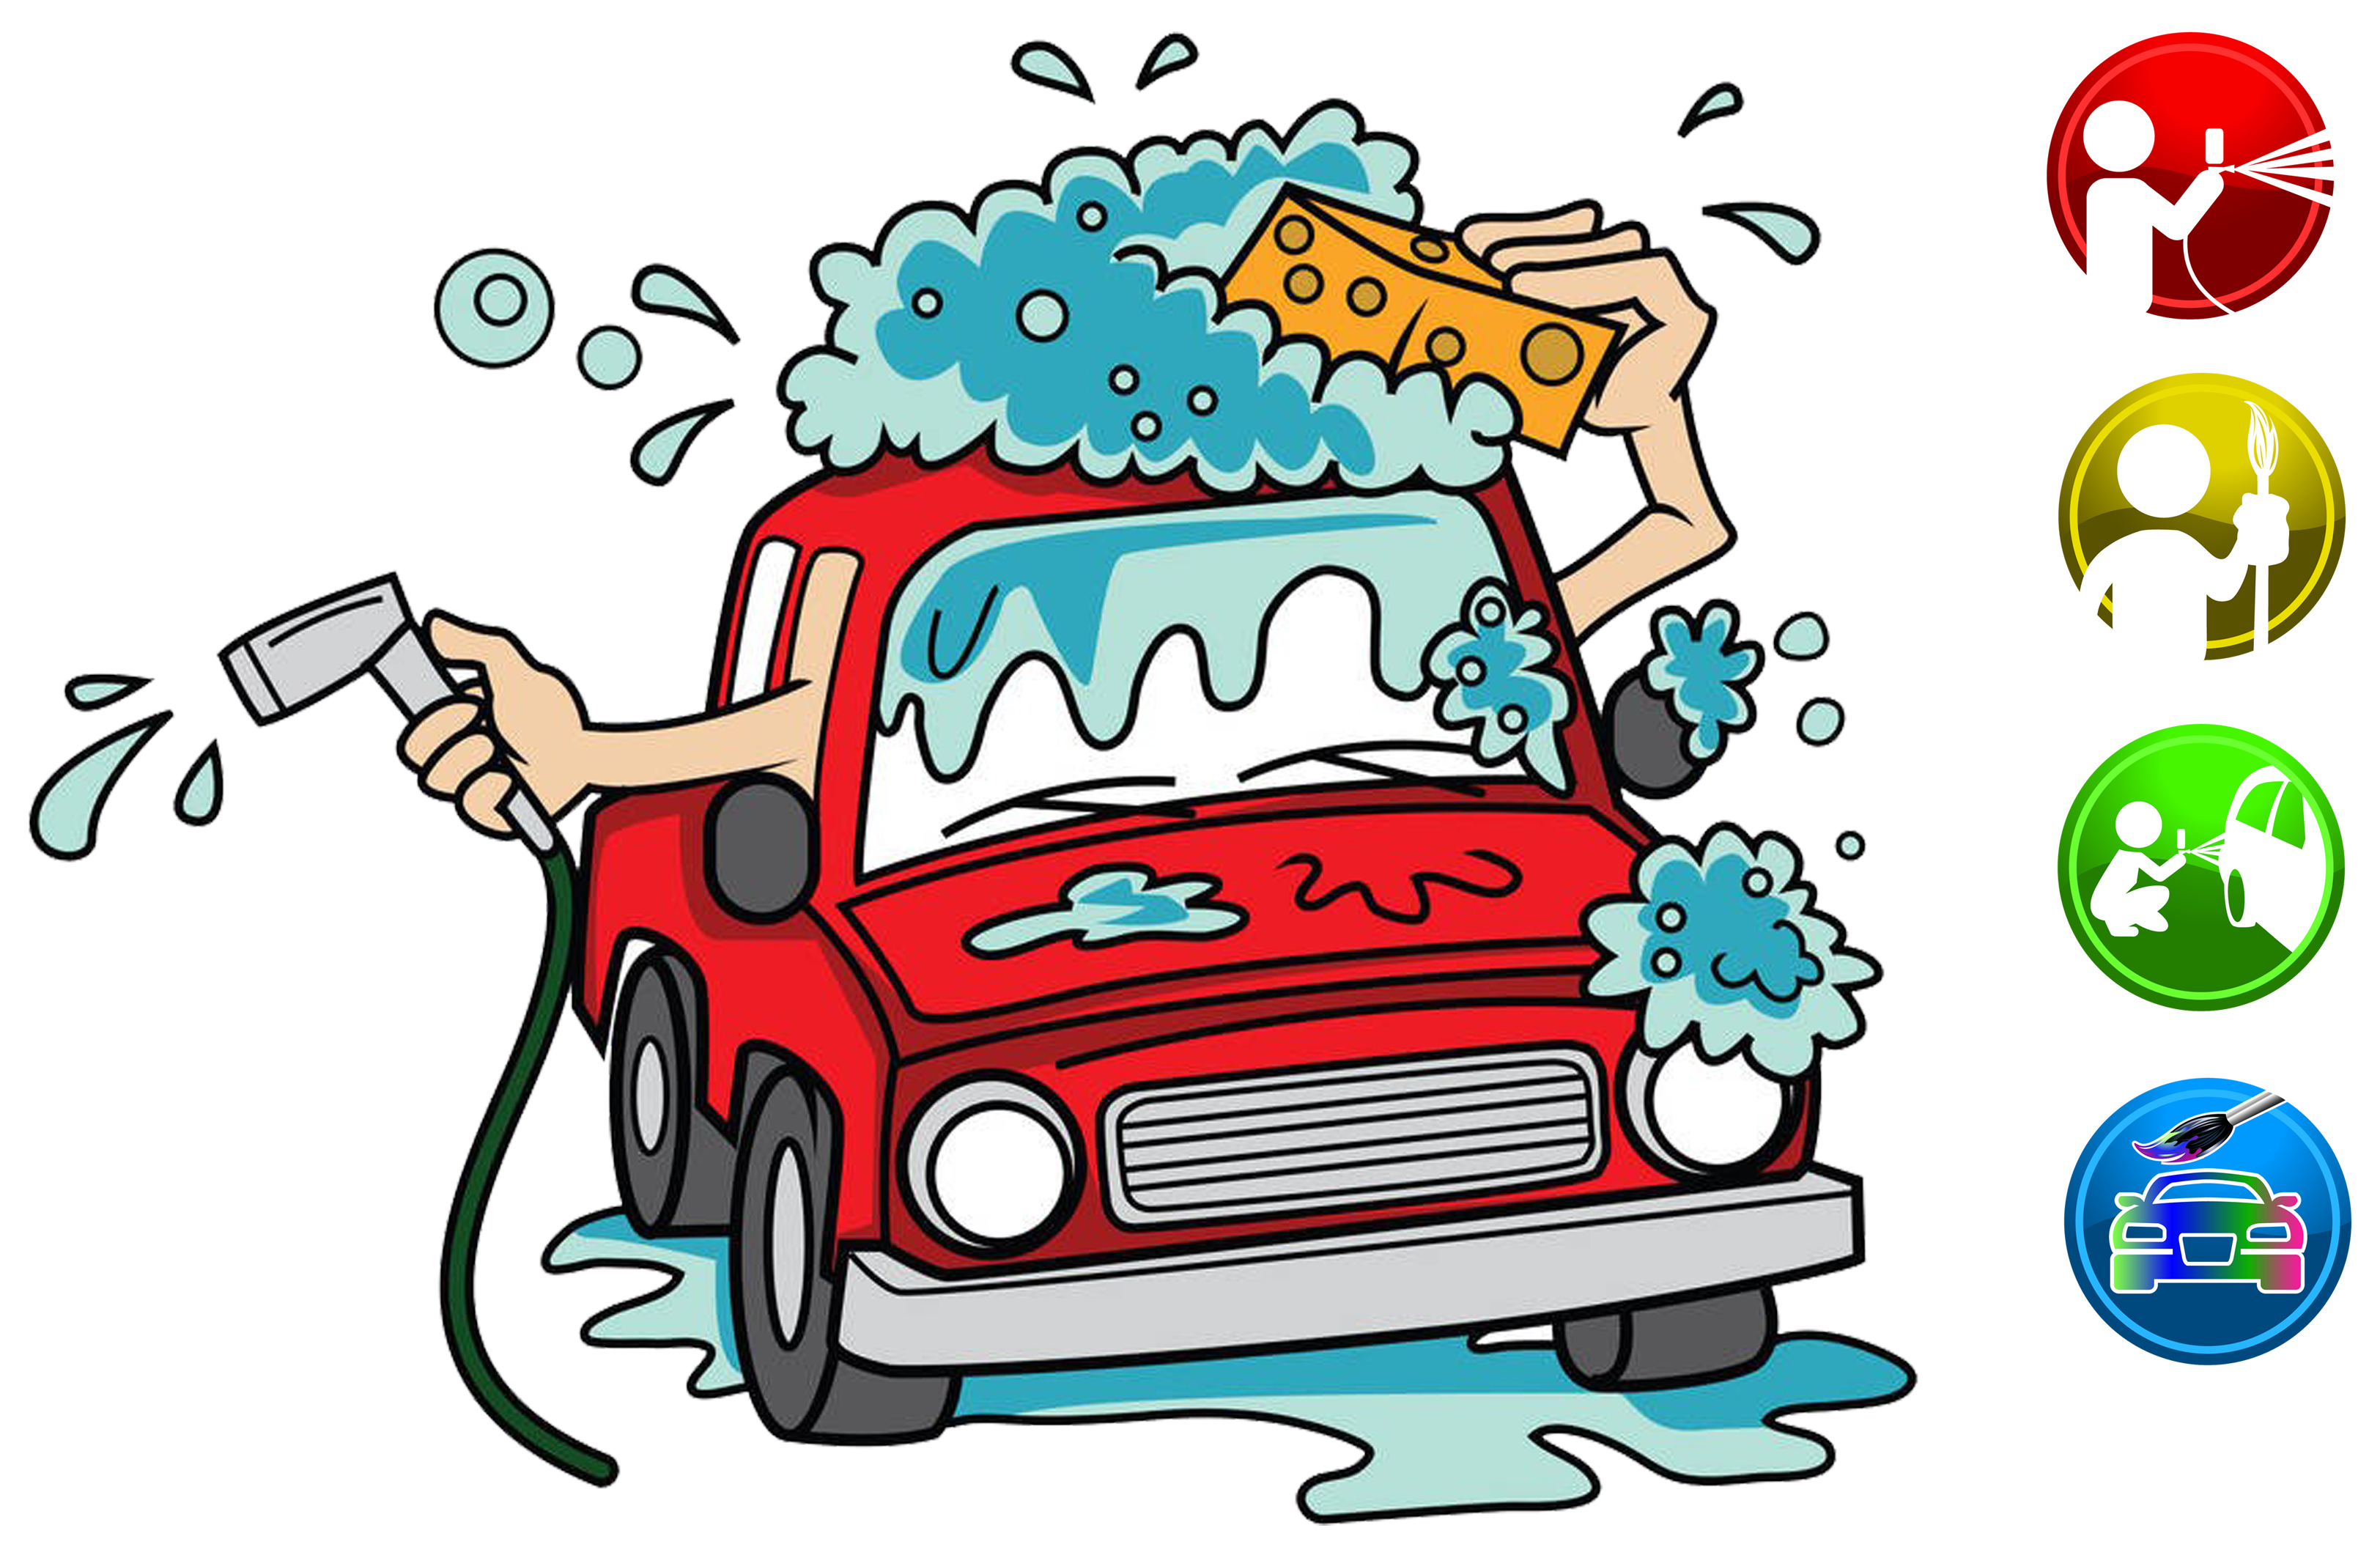 Clipart washing the car banner Car wash Cartoon Clip art - Cartoon car wash advertisement 3248*2126 ... banner